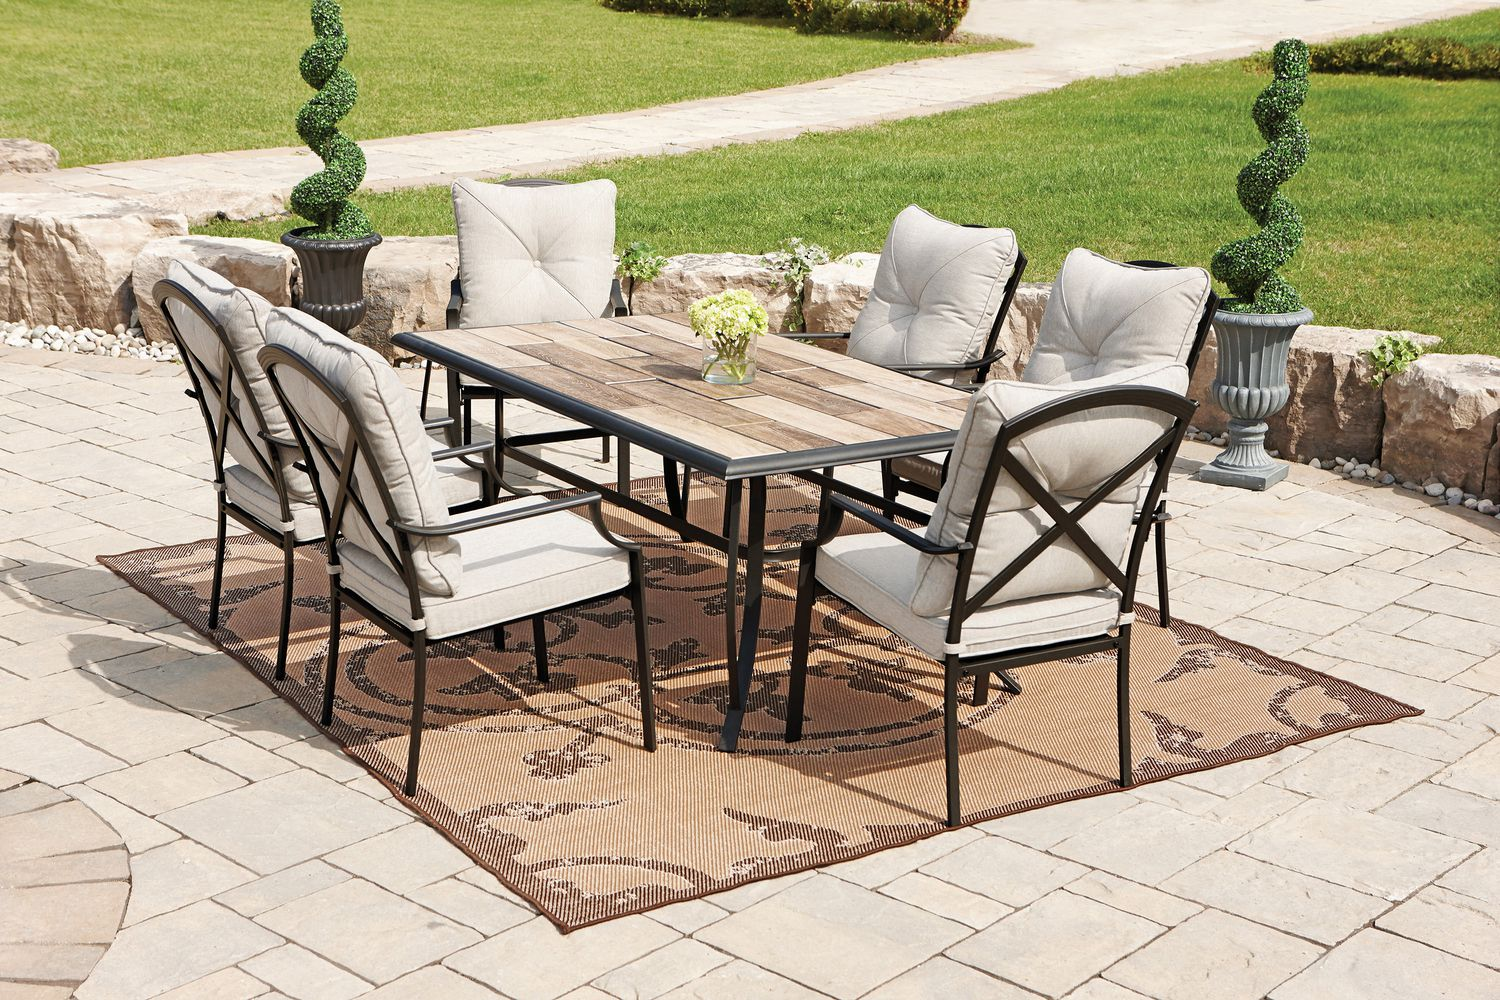 Walmart Patio Chair: How to Upgrade Your Outdoor Space ...